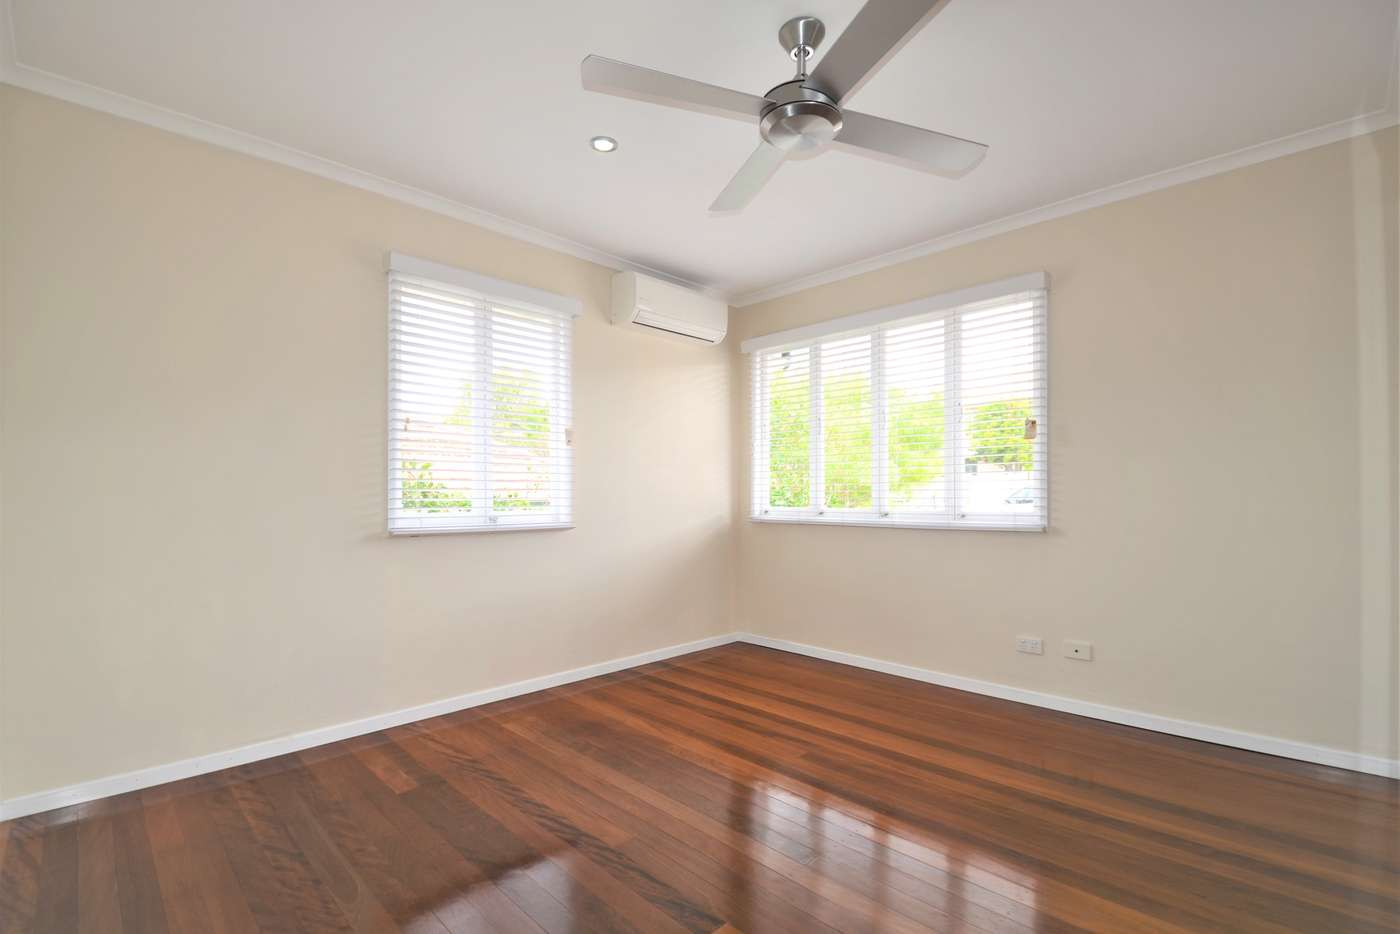 Sixth view of Homely house listing, 5 Gloriana Street, Morningside QLD 4170